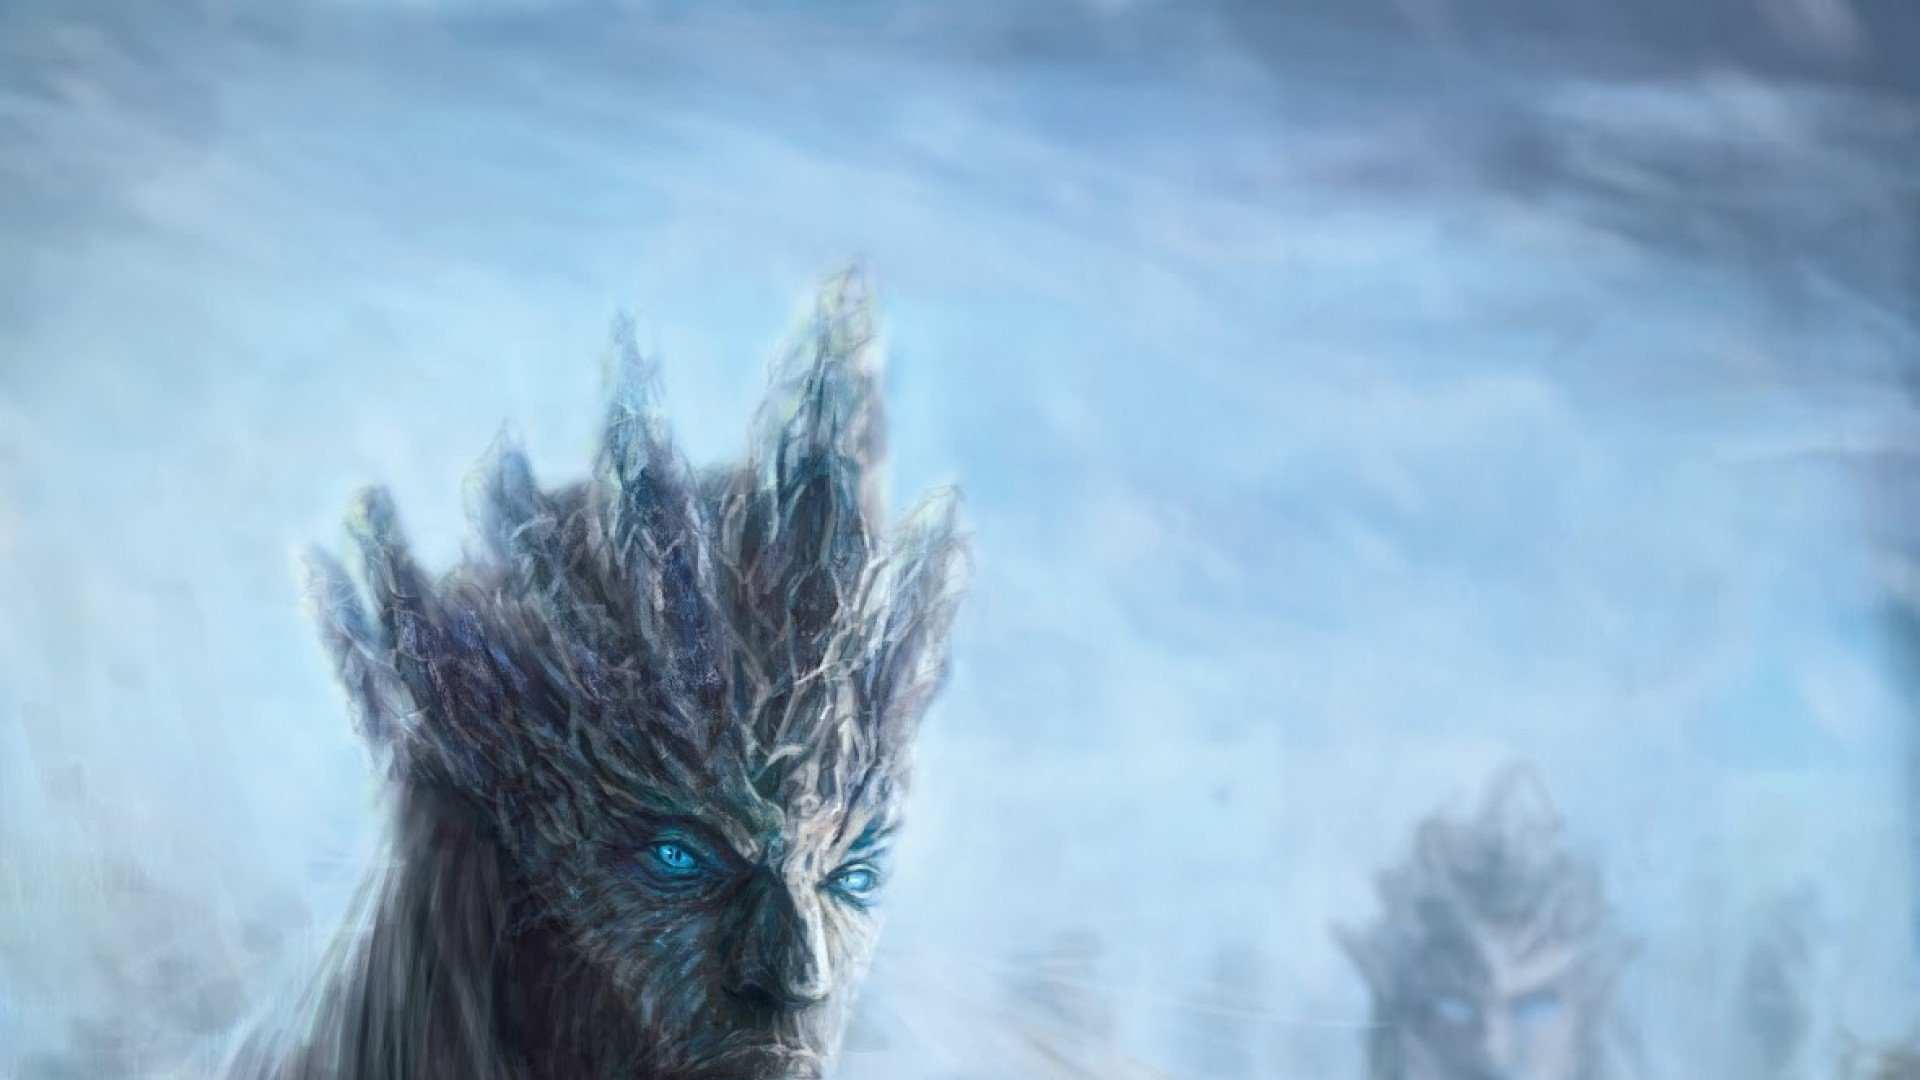 Game of Thrones 1080p   Wallpaper High Definition High Quality 1920x1080